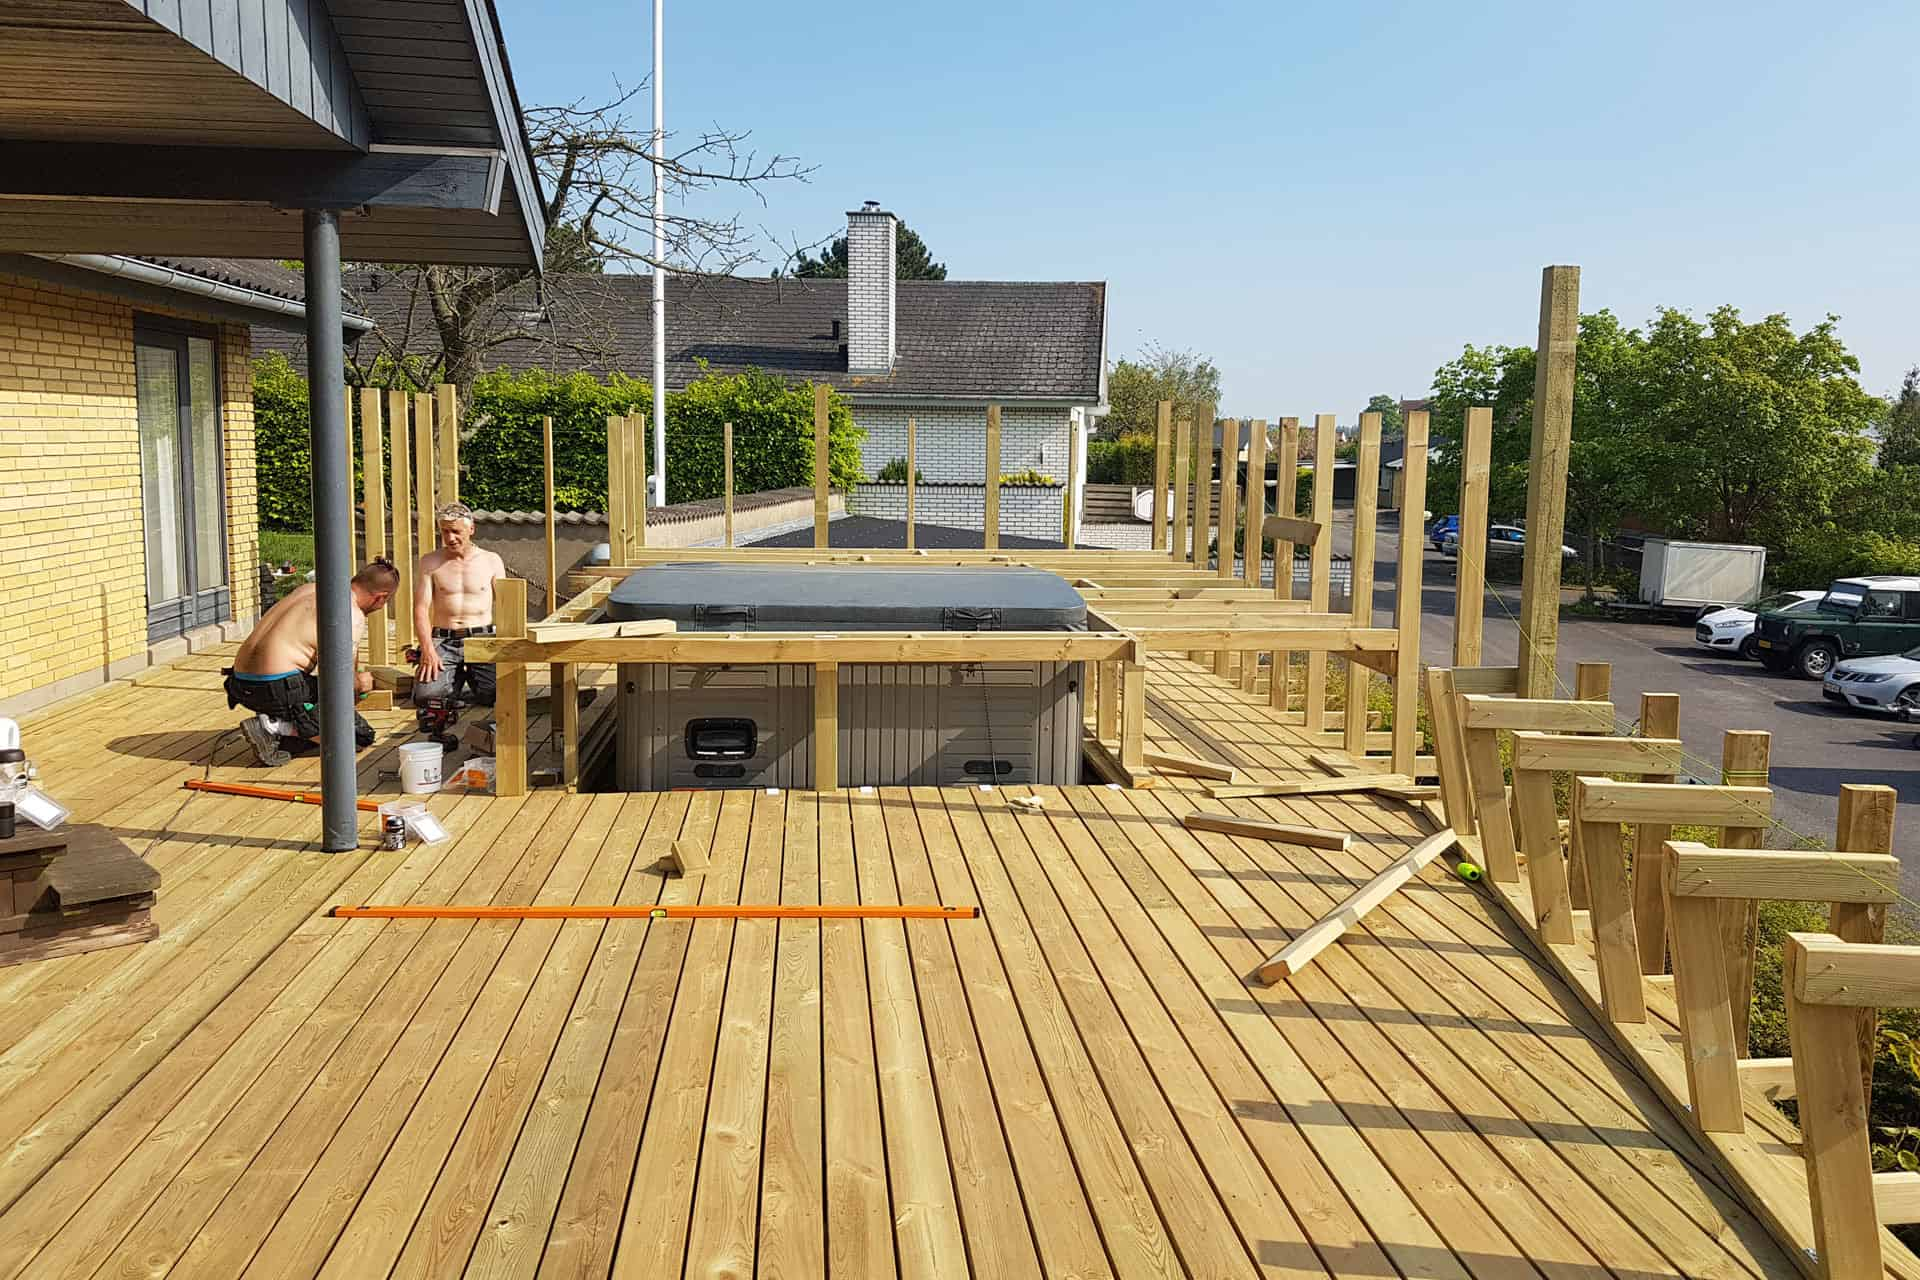 How to build a deck - decking